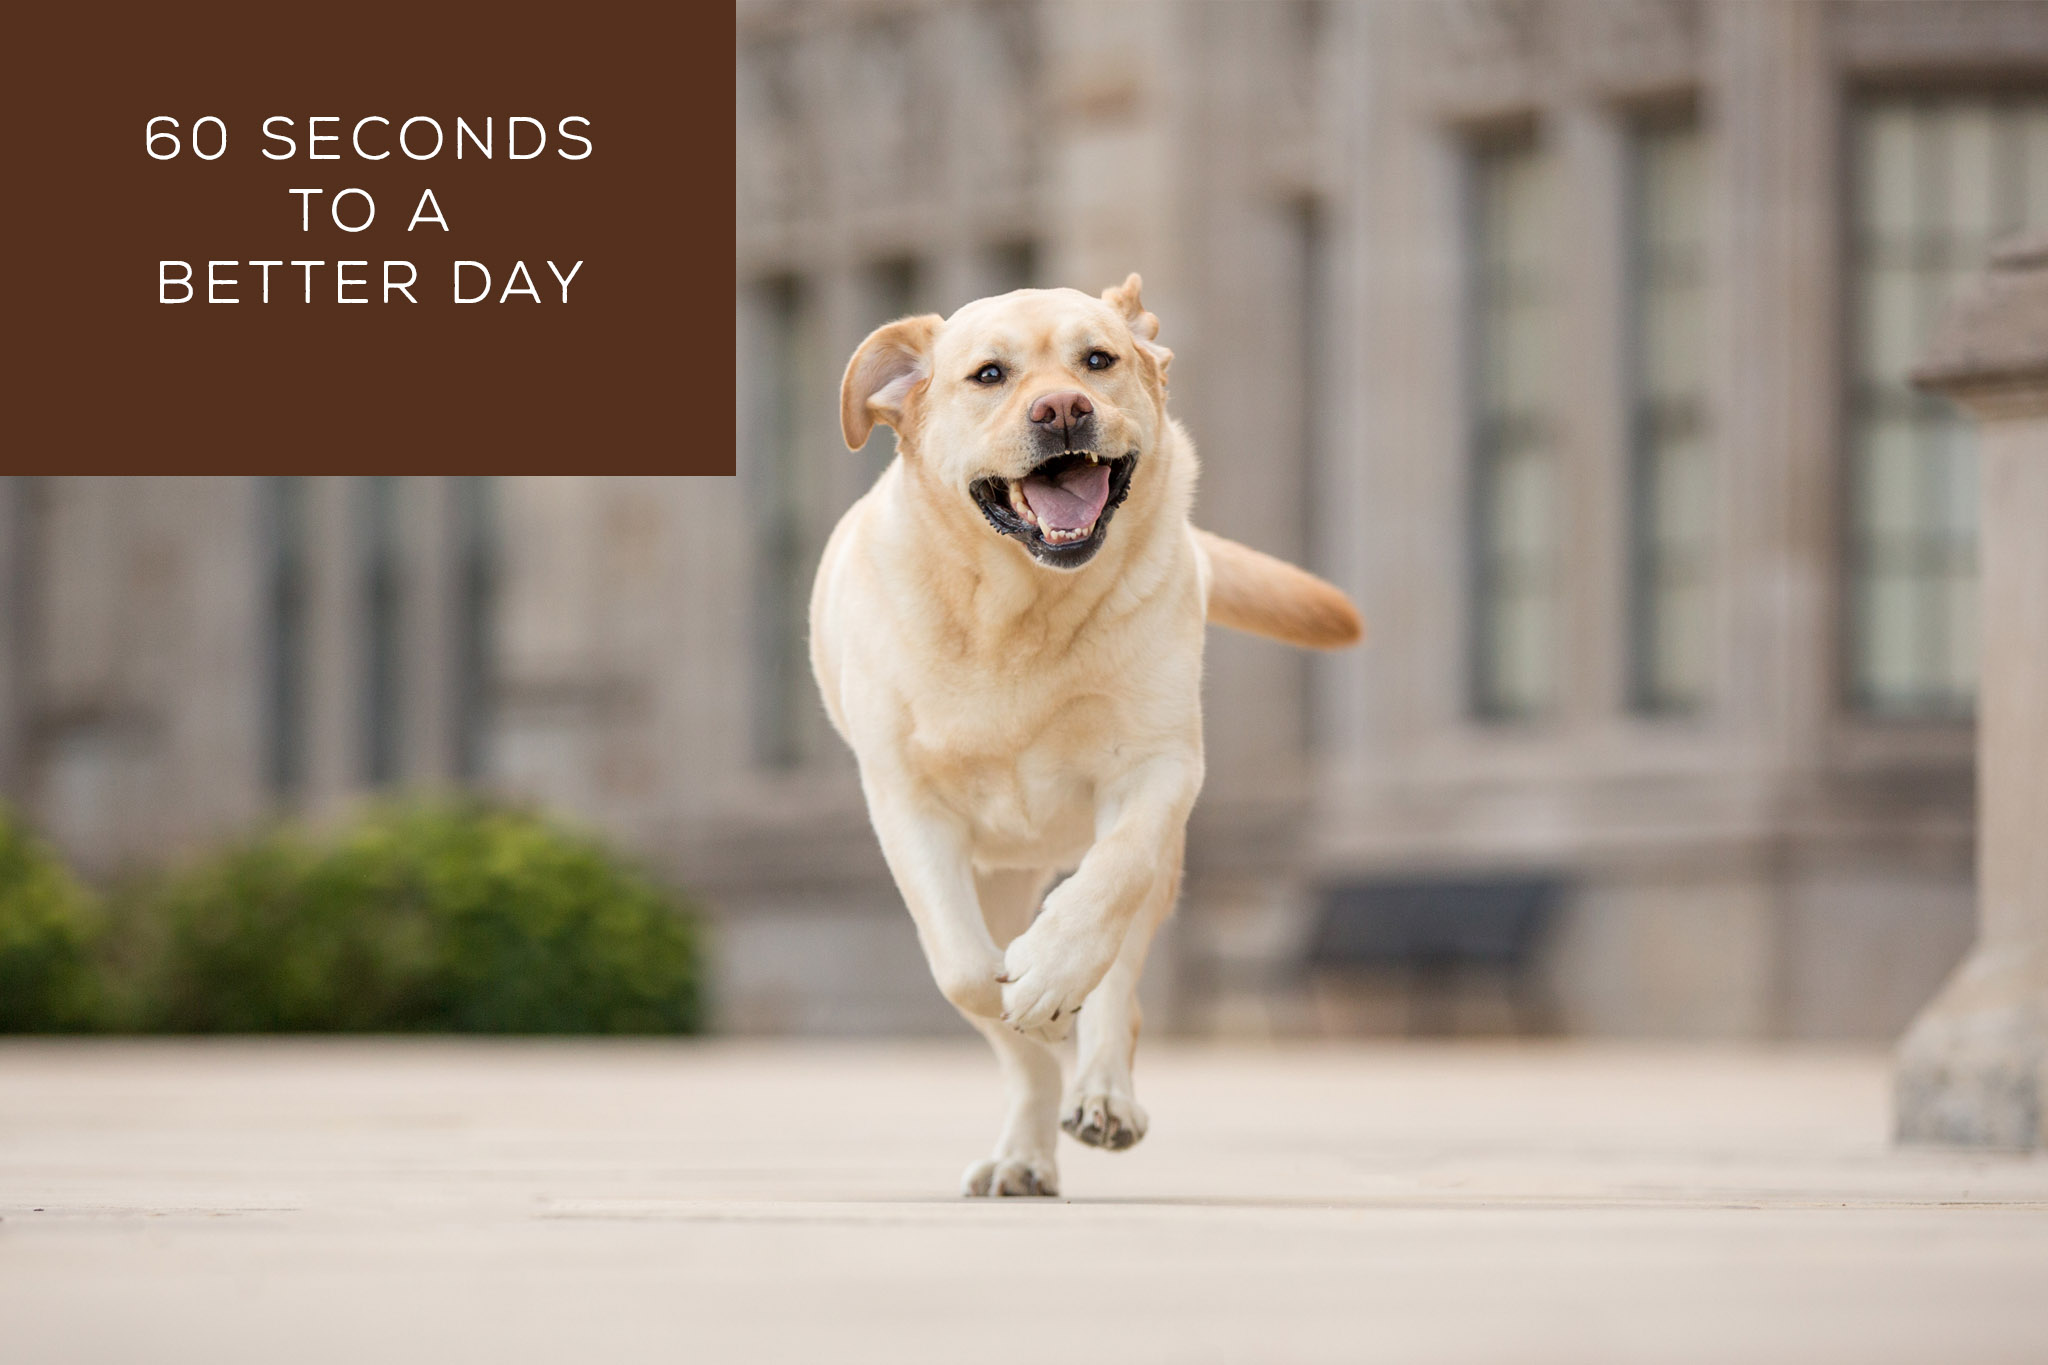 60 Seconds to a Better Day